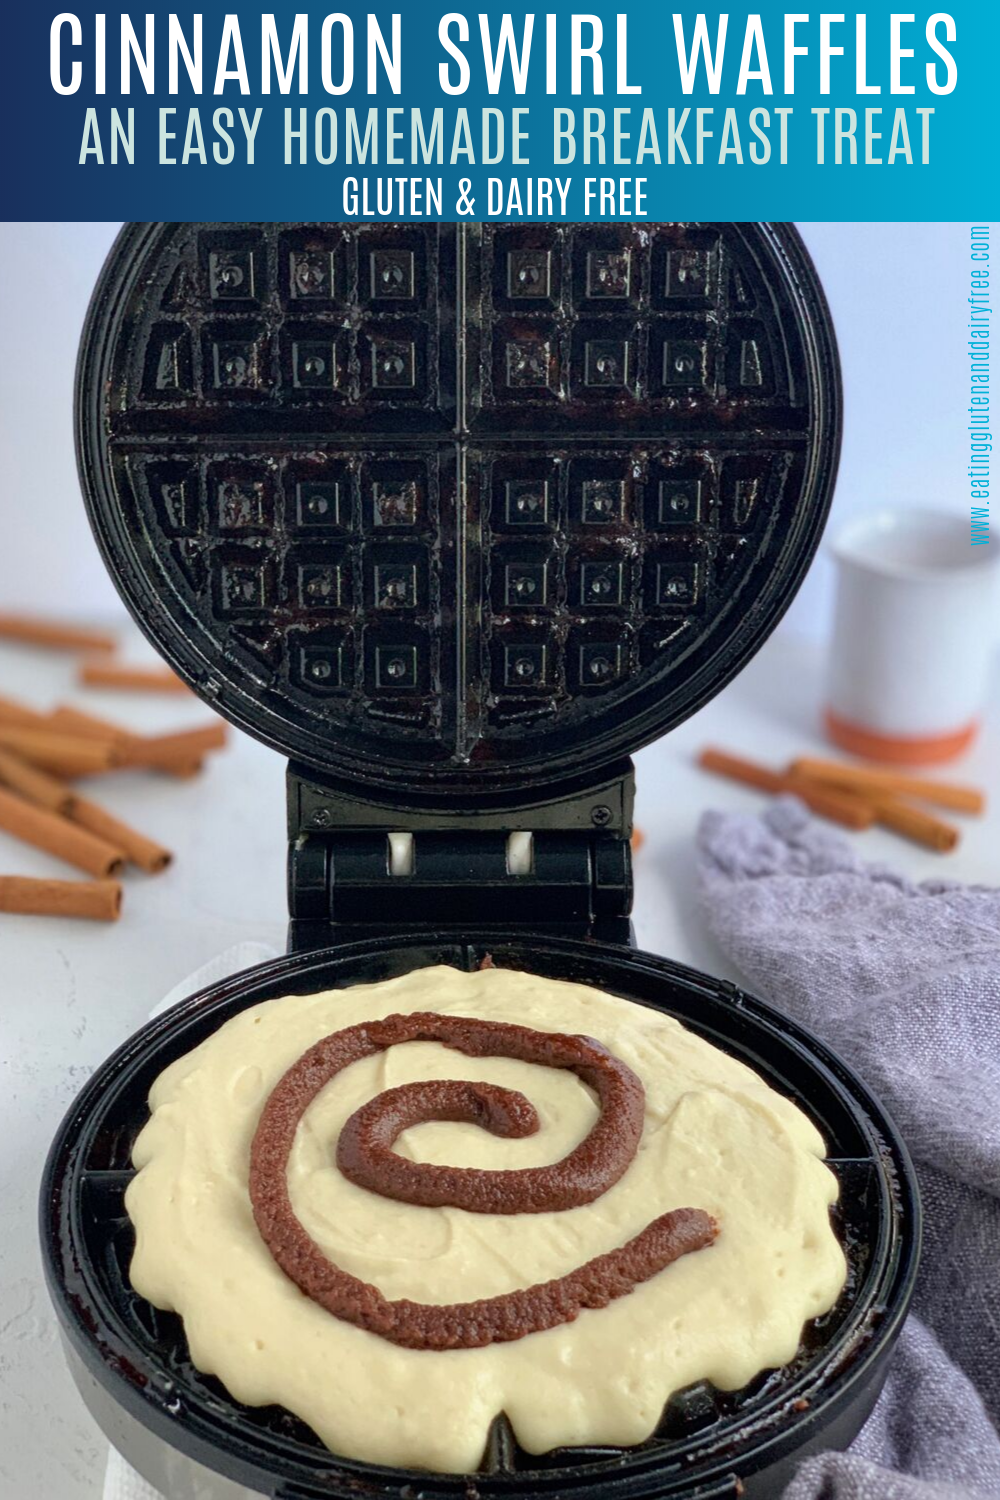 waffle iron with waffle mix with cinnamon swirl. Cinnamon sticks in the background of image. with text that says cinnamon swirl waffles, it's an easy homemade breakfast treat that is Gluten and dairy free.